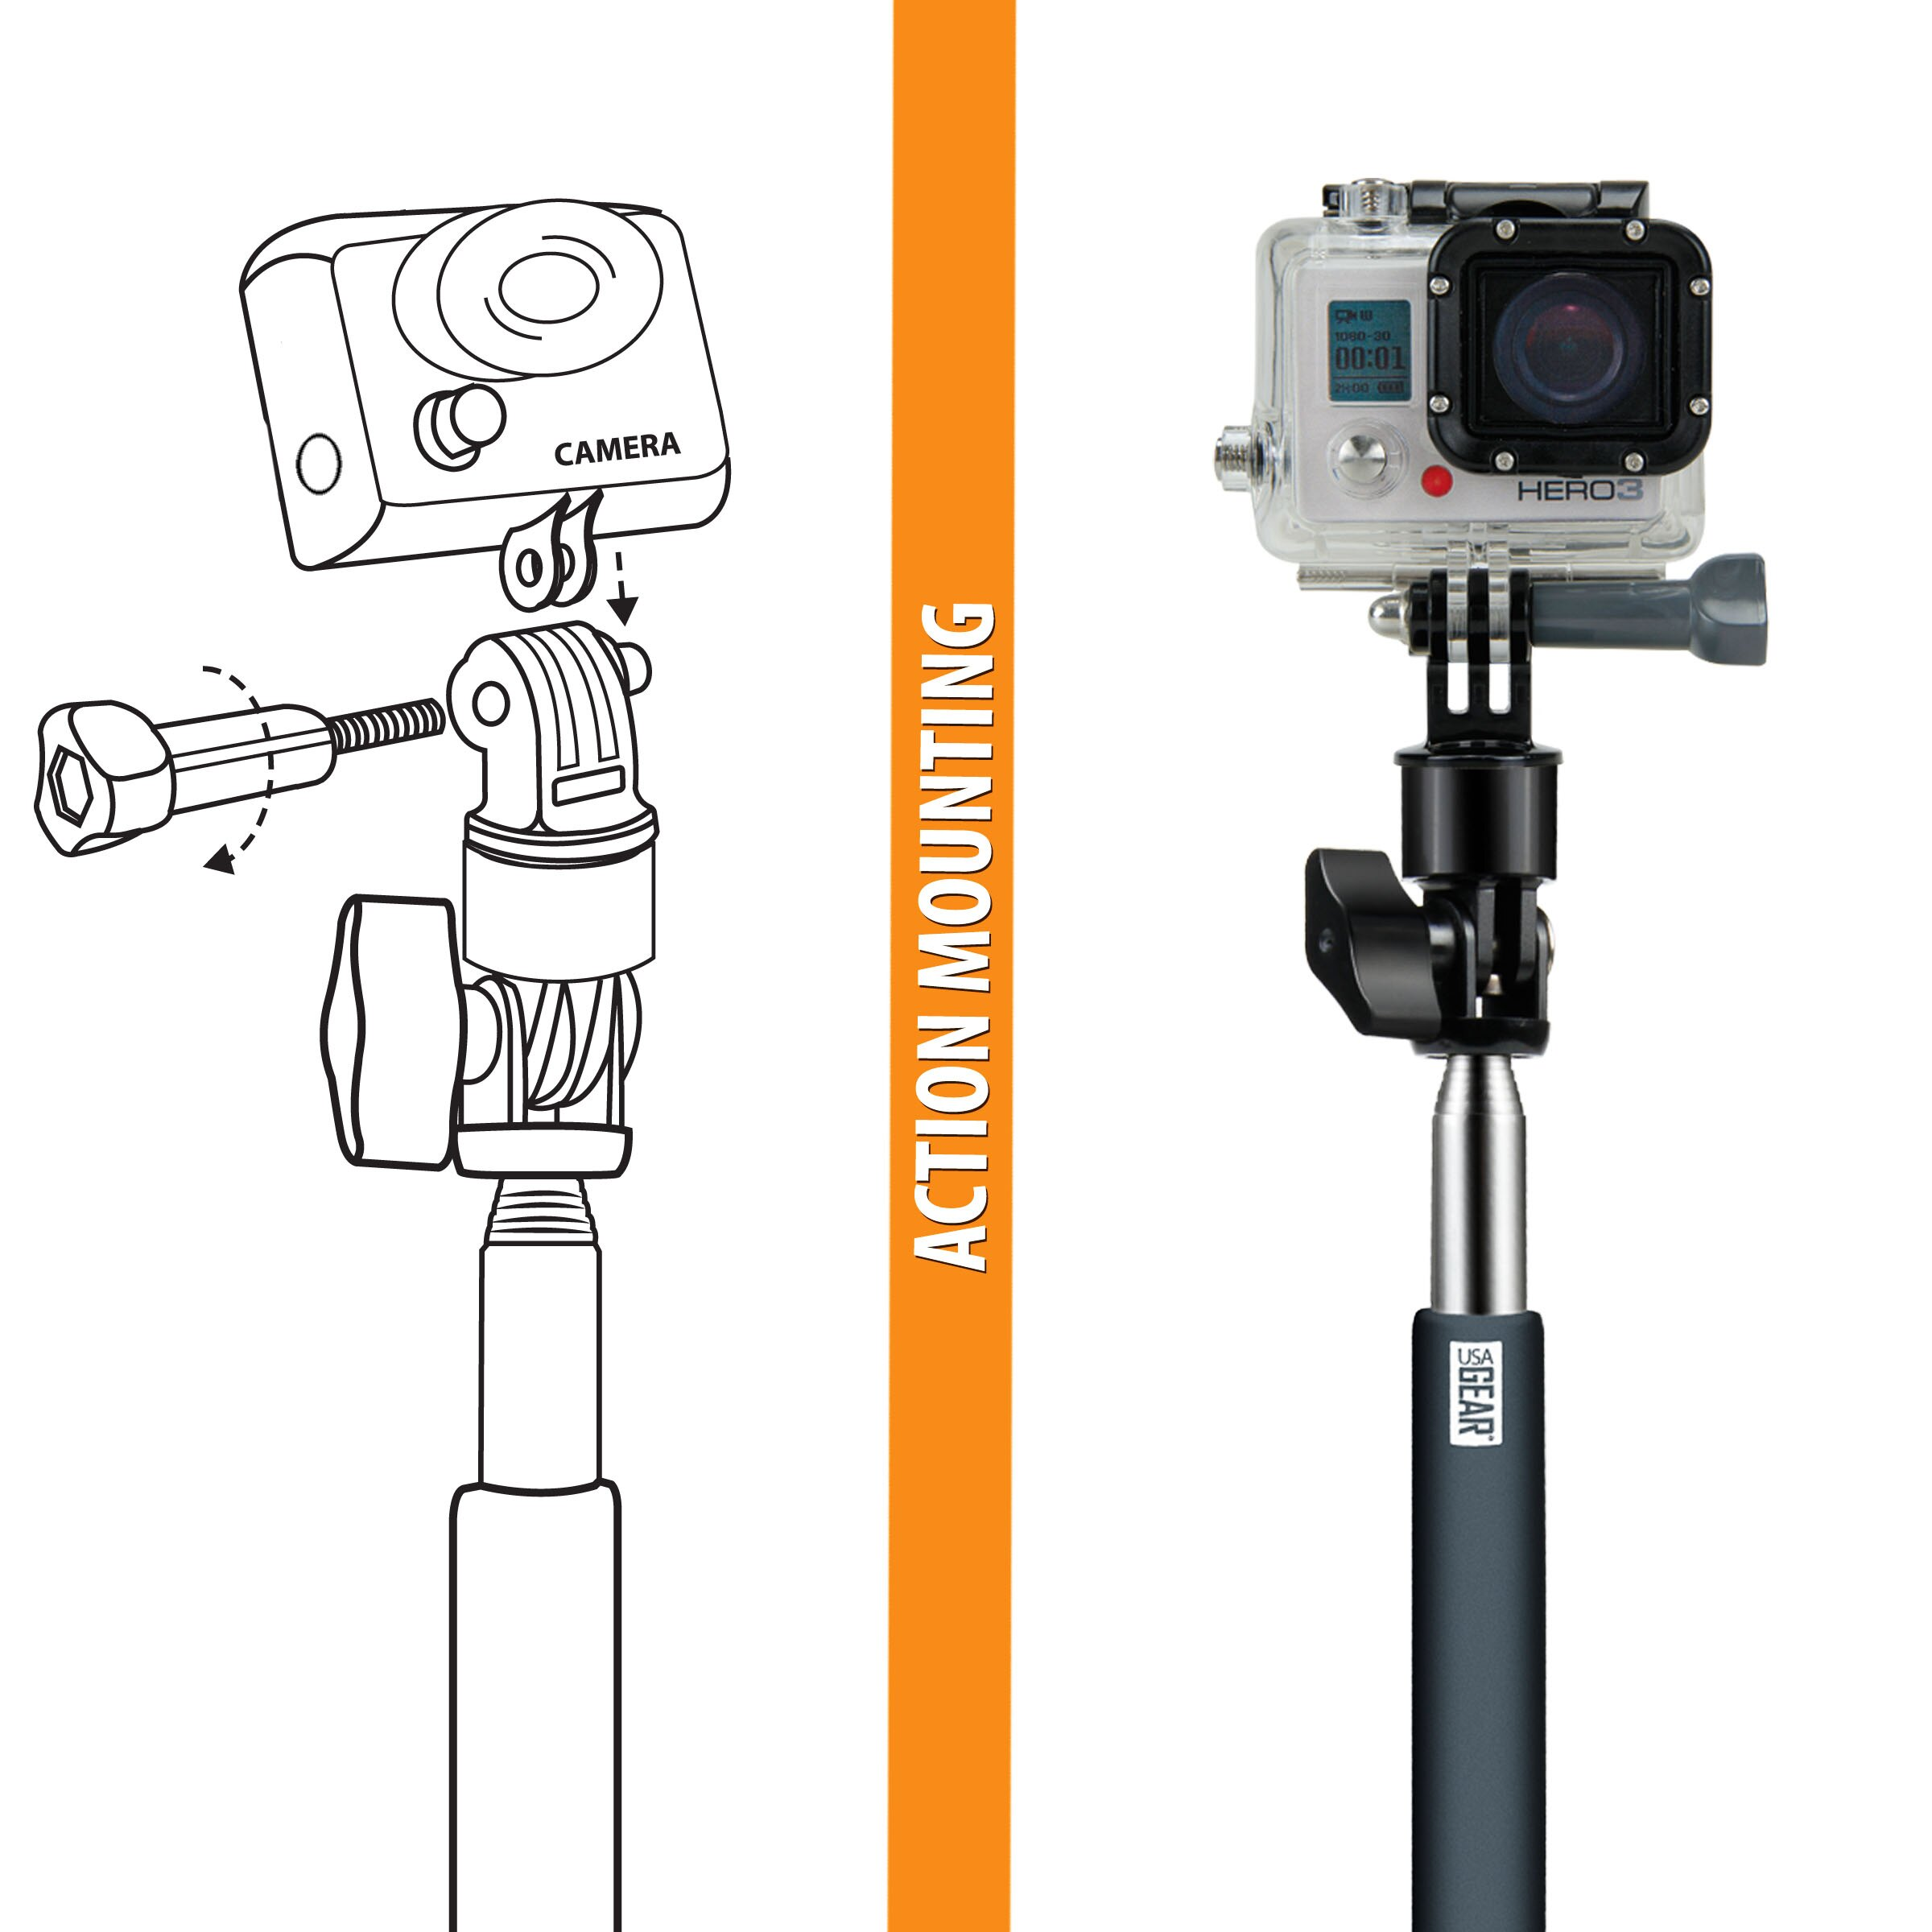 USA Gear Telescopic Monopod with Hand Grip and 180-Degree Swivel Mount for GoPro & More Action Cams 6